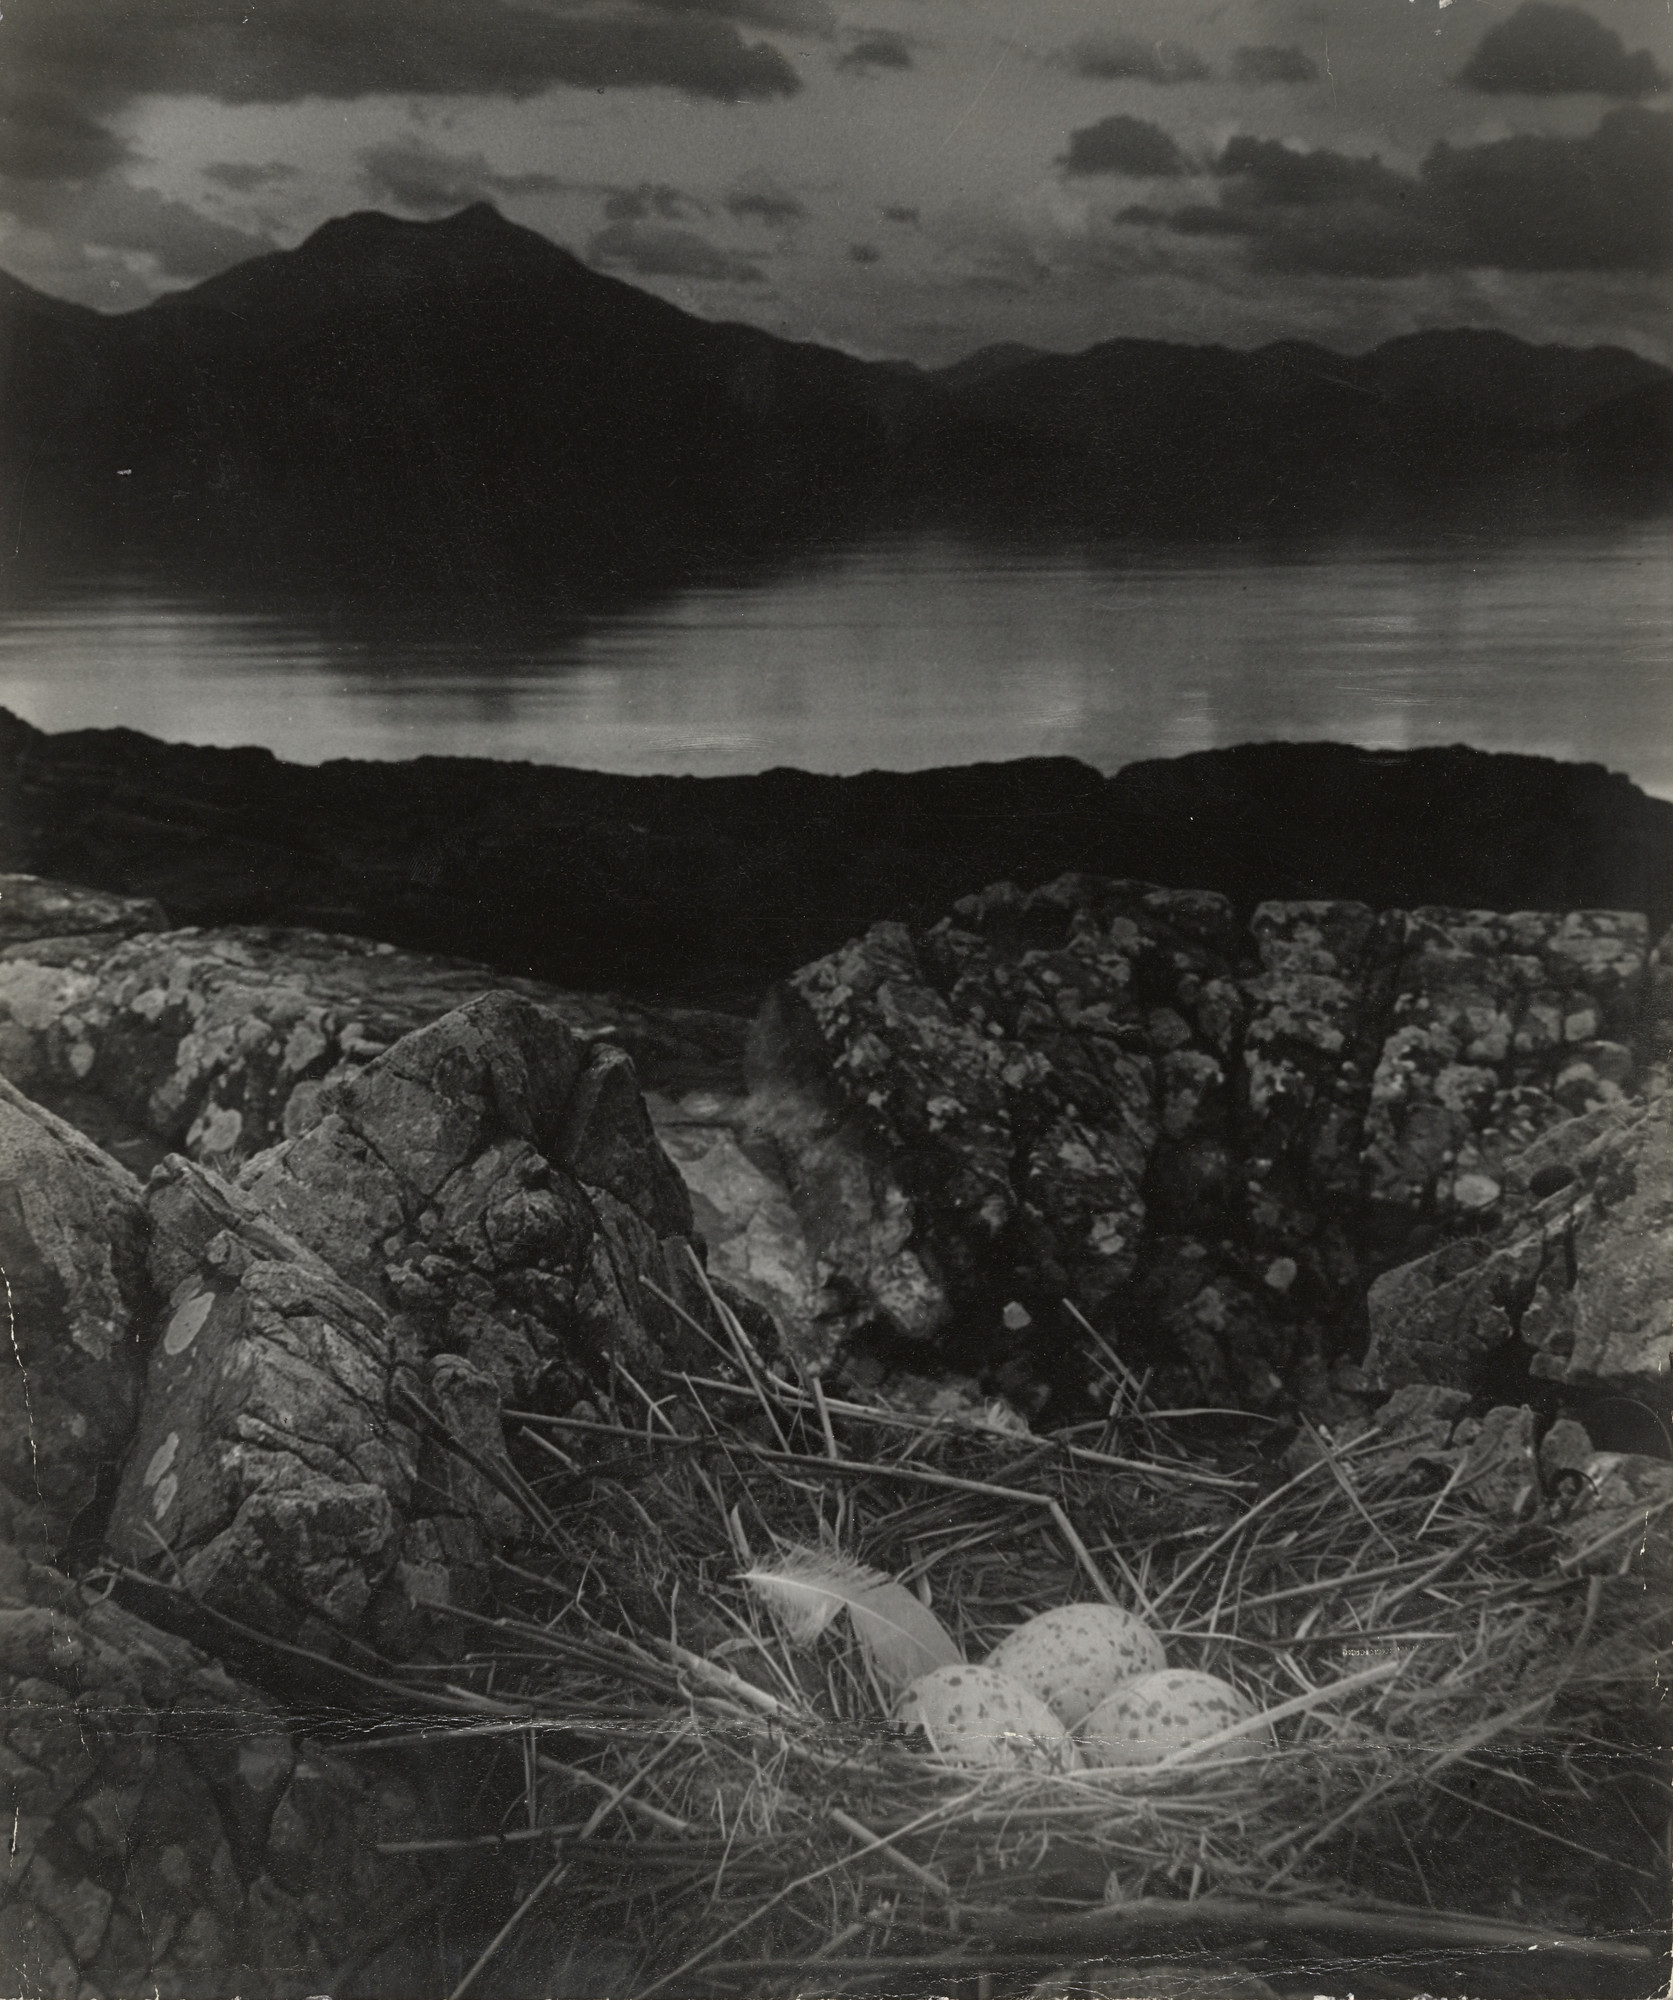 Bill Brandt. Gull's Nest, Late on Midsummer Night, Isle of Skye. 1947